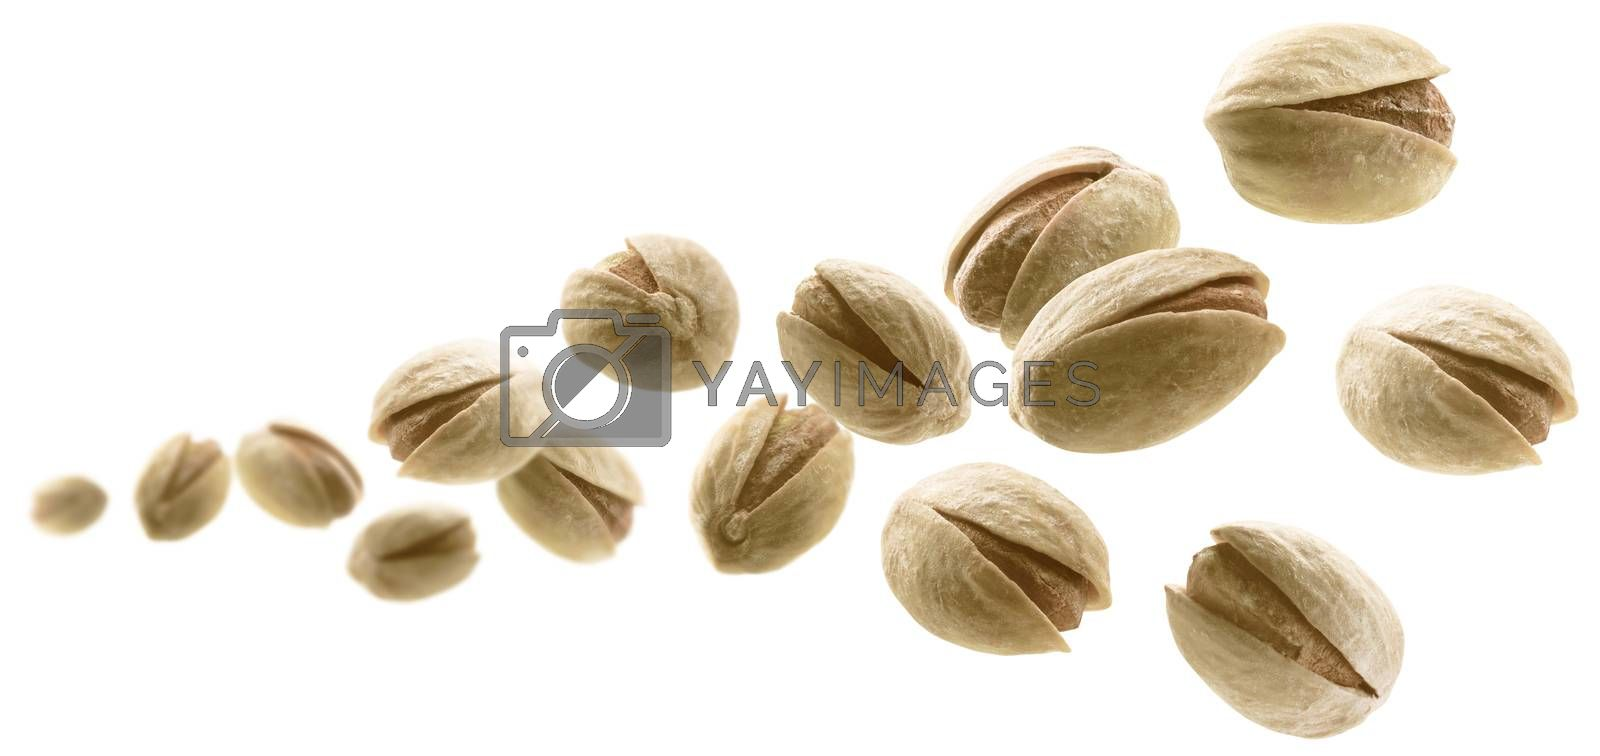 Salted pistachios levitate on a white background.